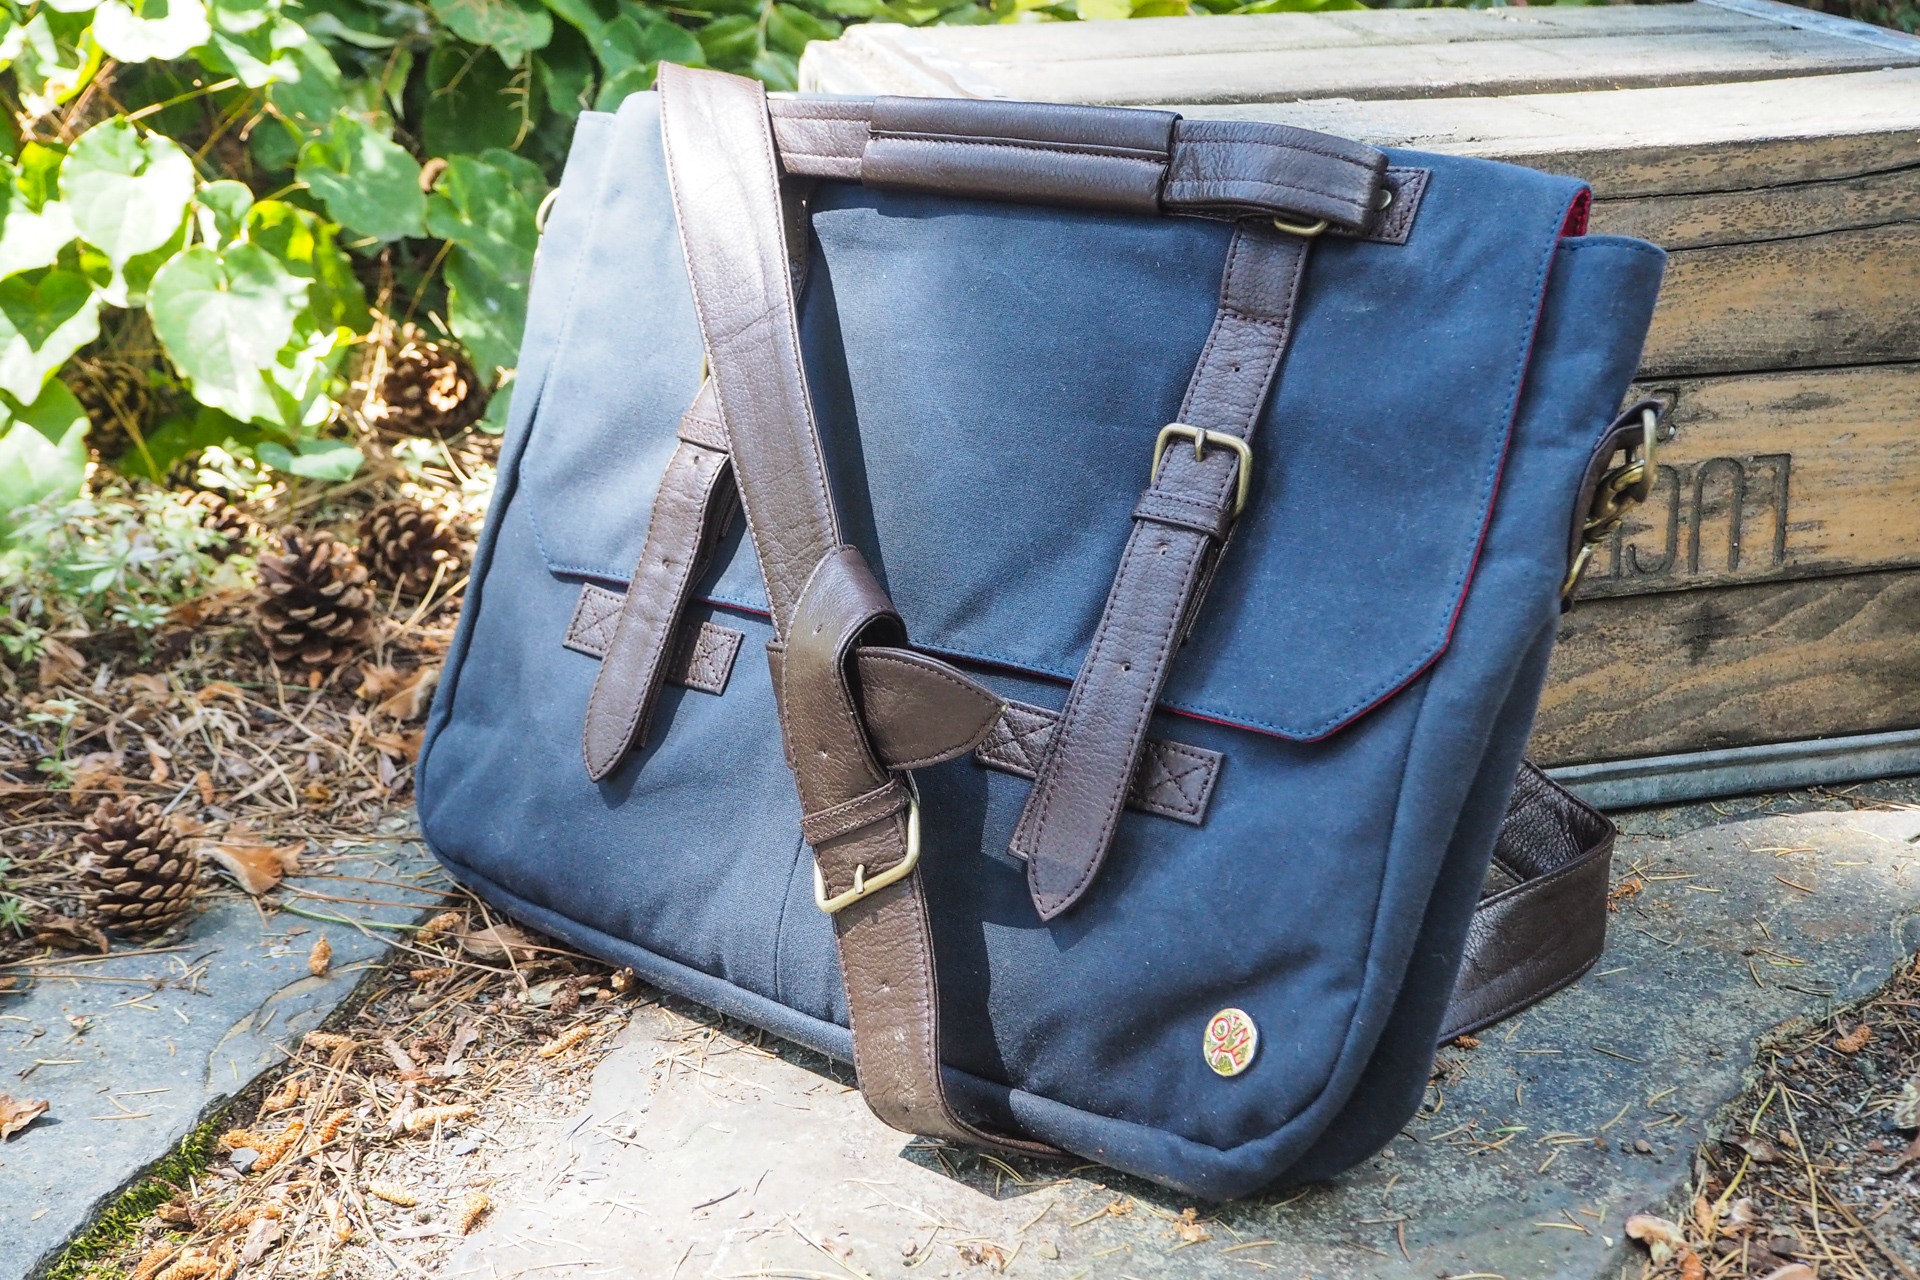 Waxed canvas bags from Waterfield, Manhattan Portage, Saddleback and more – TechCrunch 4